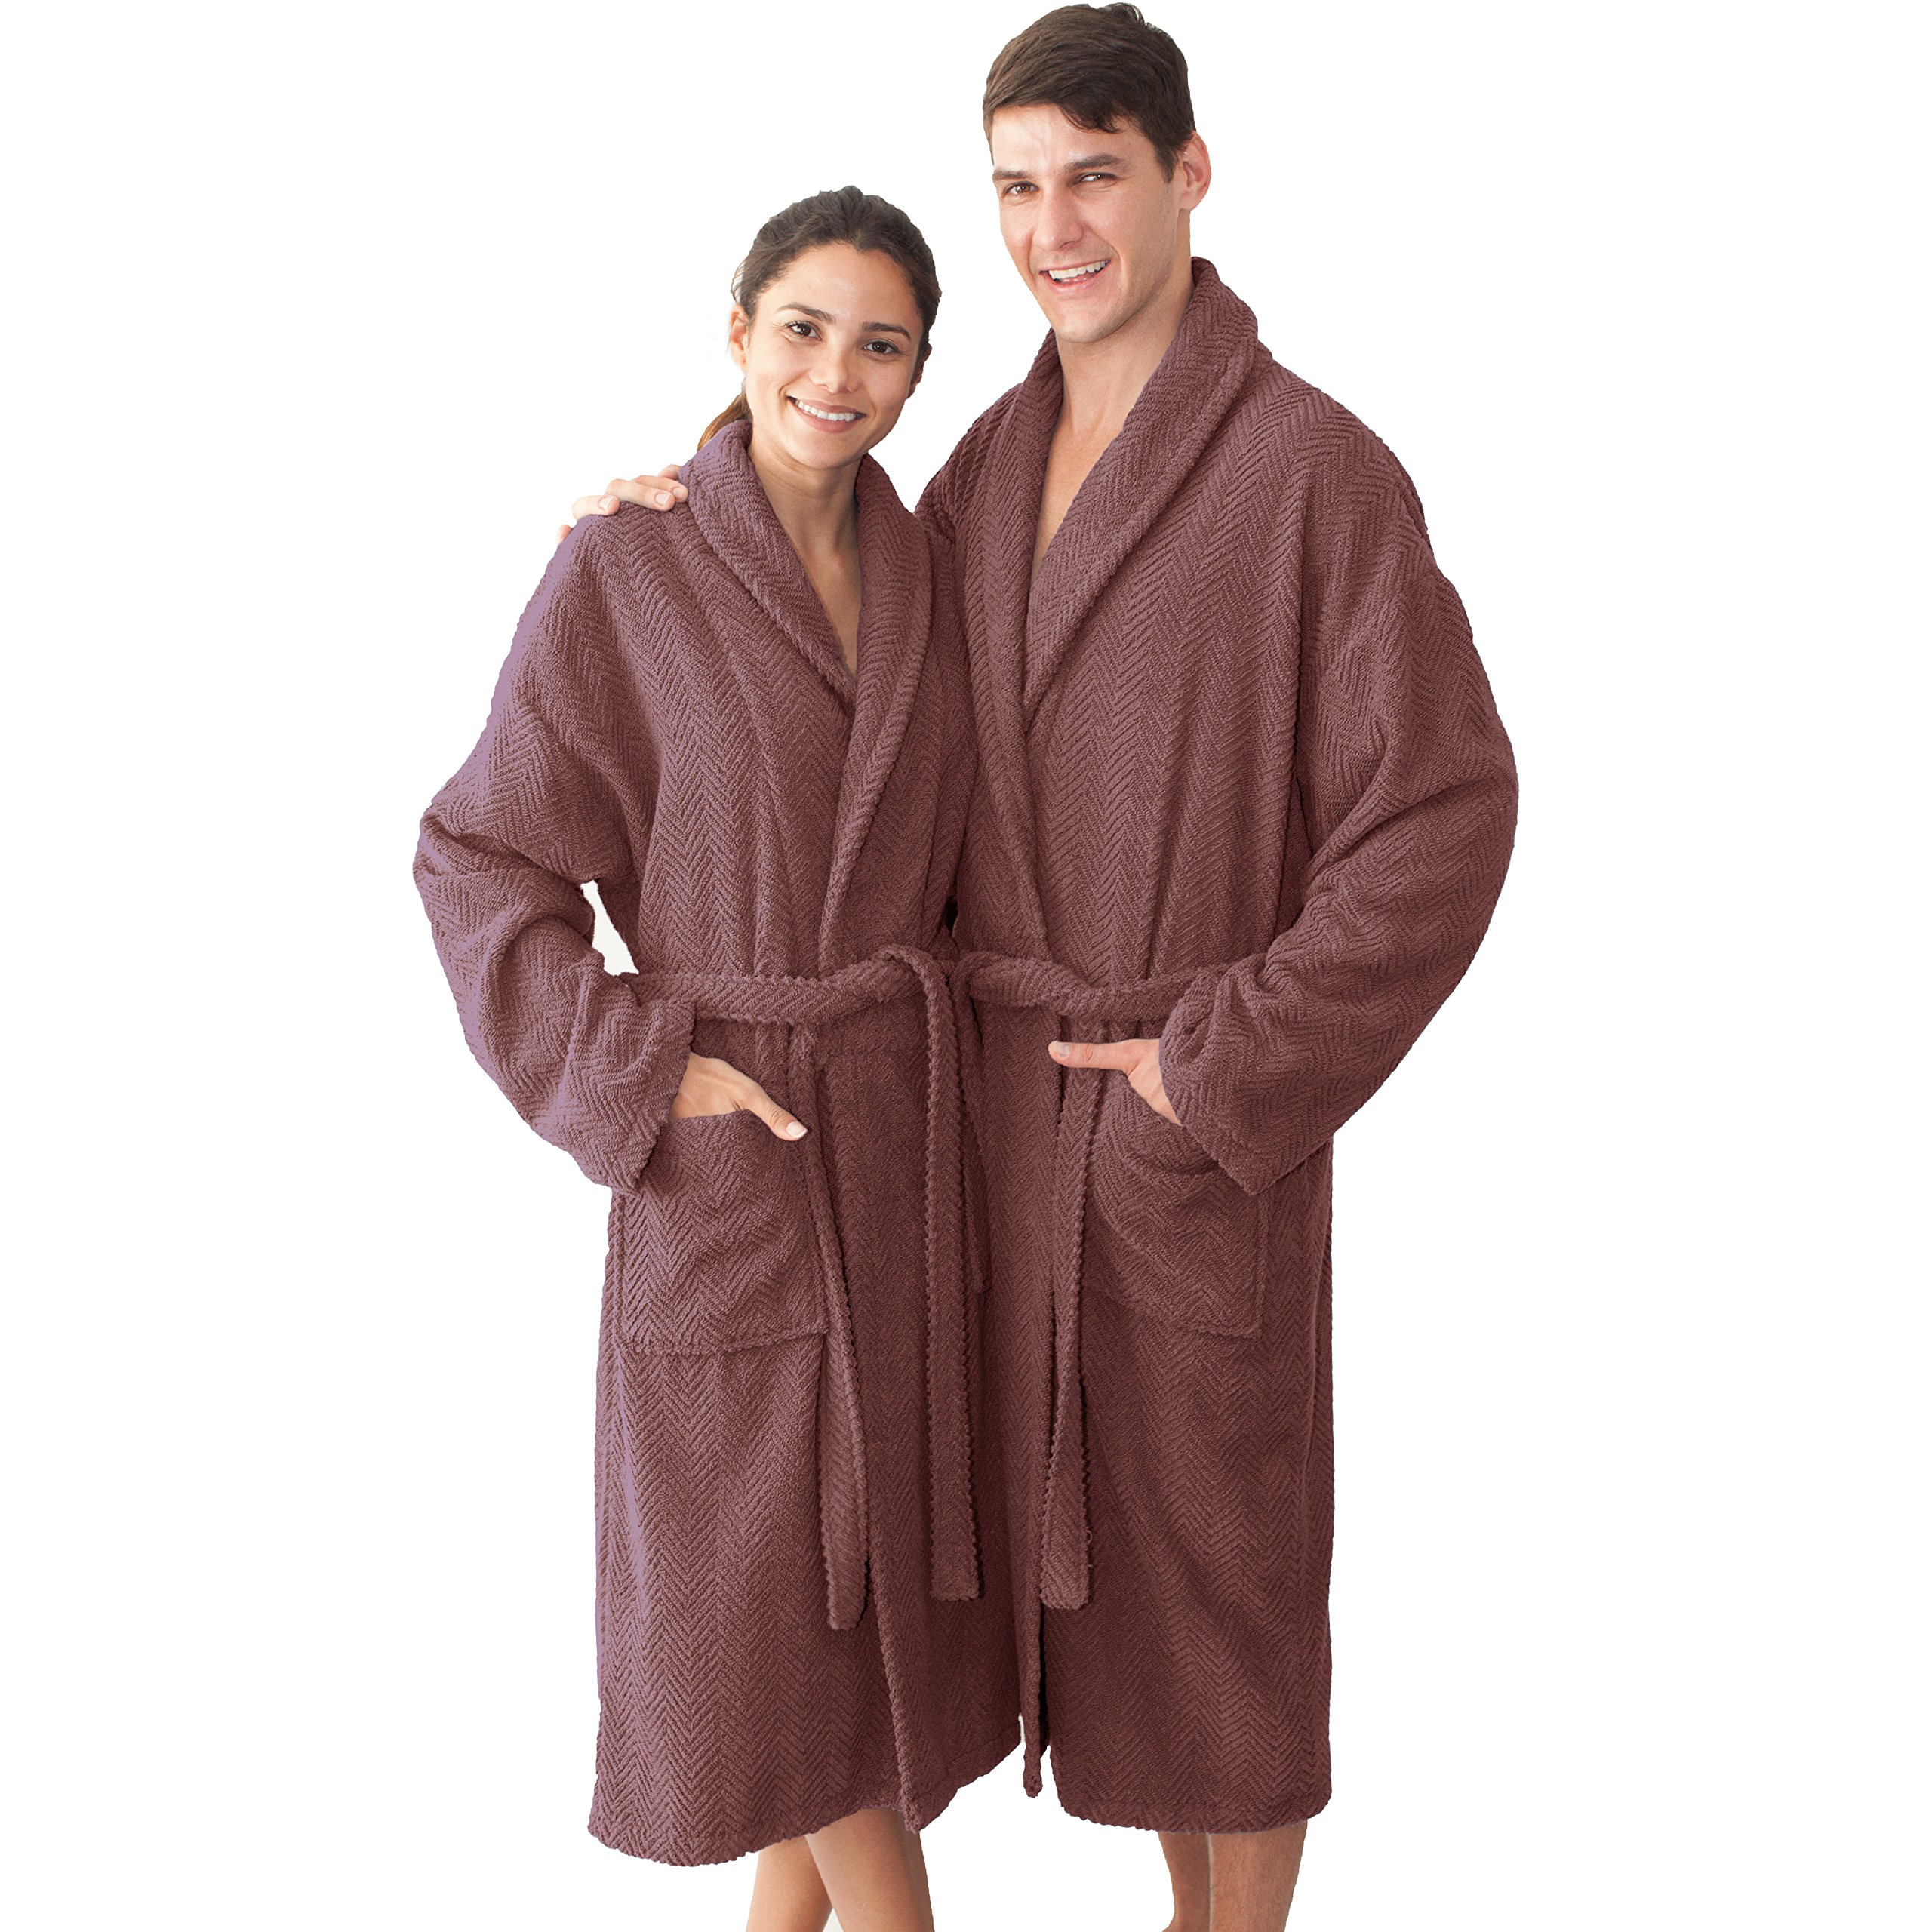 HT 49 Inches Plum Purple Solid Color Large X-large Unisex Bathrobe, Purple Comfortable Spa Robe For Men And Women, Soft Cozy Luxurious Herringbone Weave Long Sleeves Belt Side Pockets, Turkish Cotton